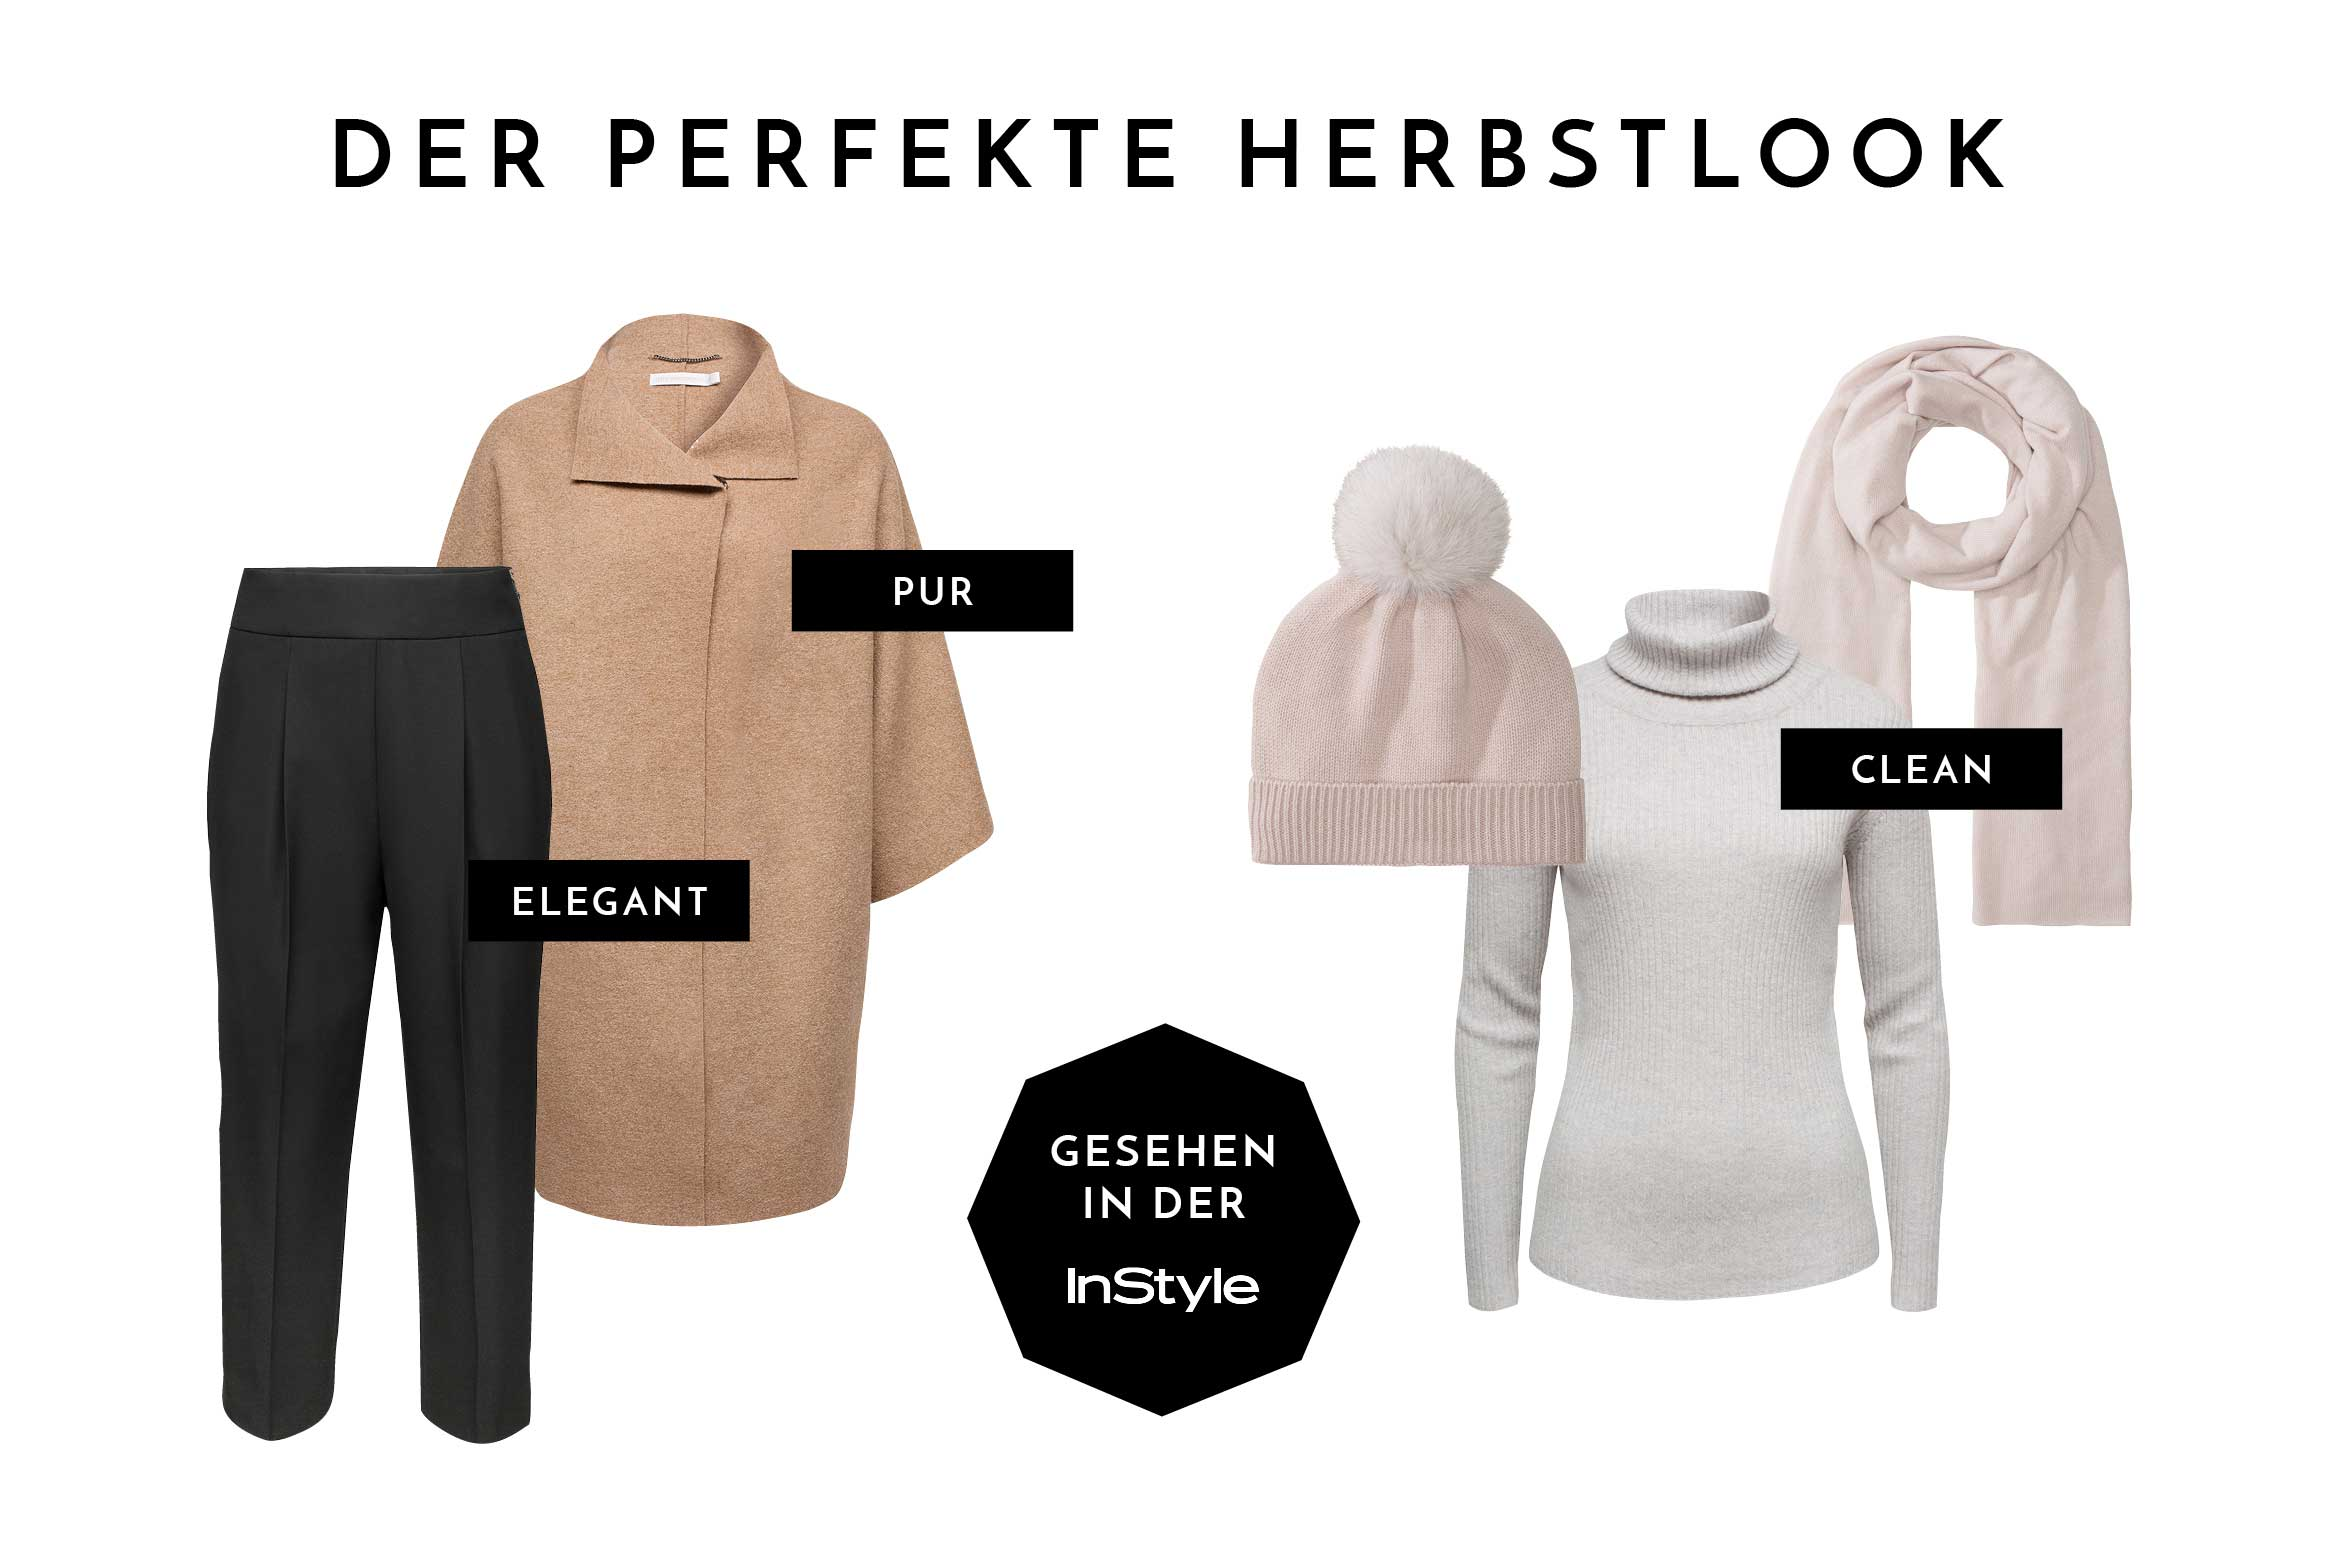 Pur & Clean - Cashmere Herbstlook